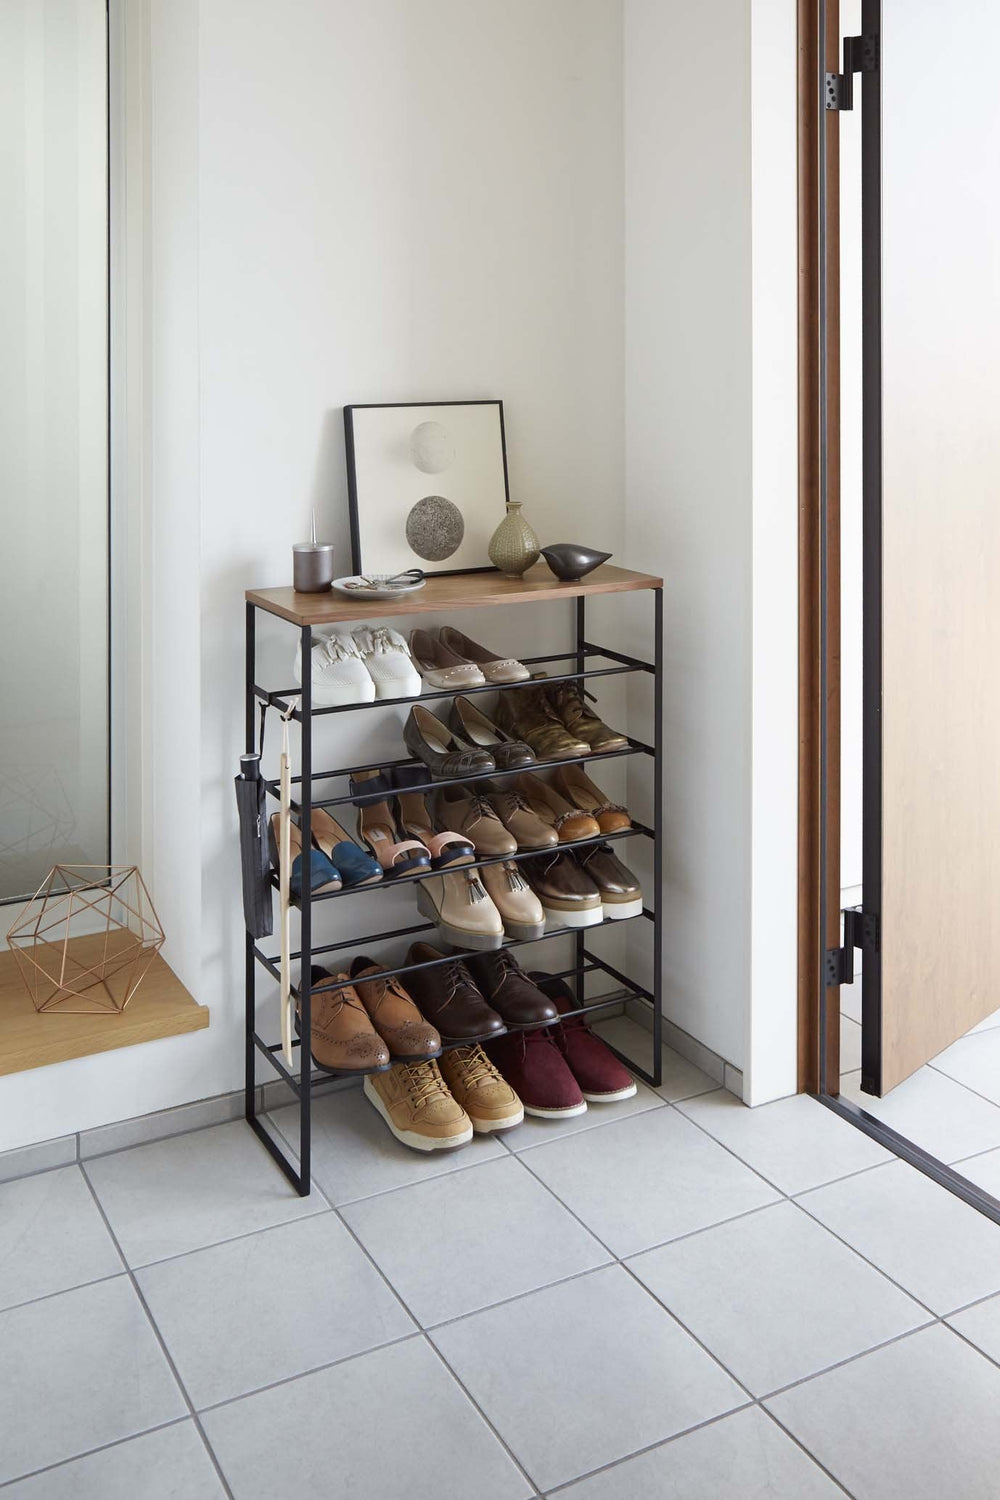 Yamazaki's Black 6 Tier Wood Top Shoe Rack filled with shoes on top of a tile floor